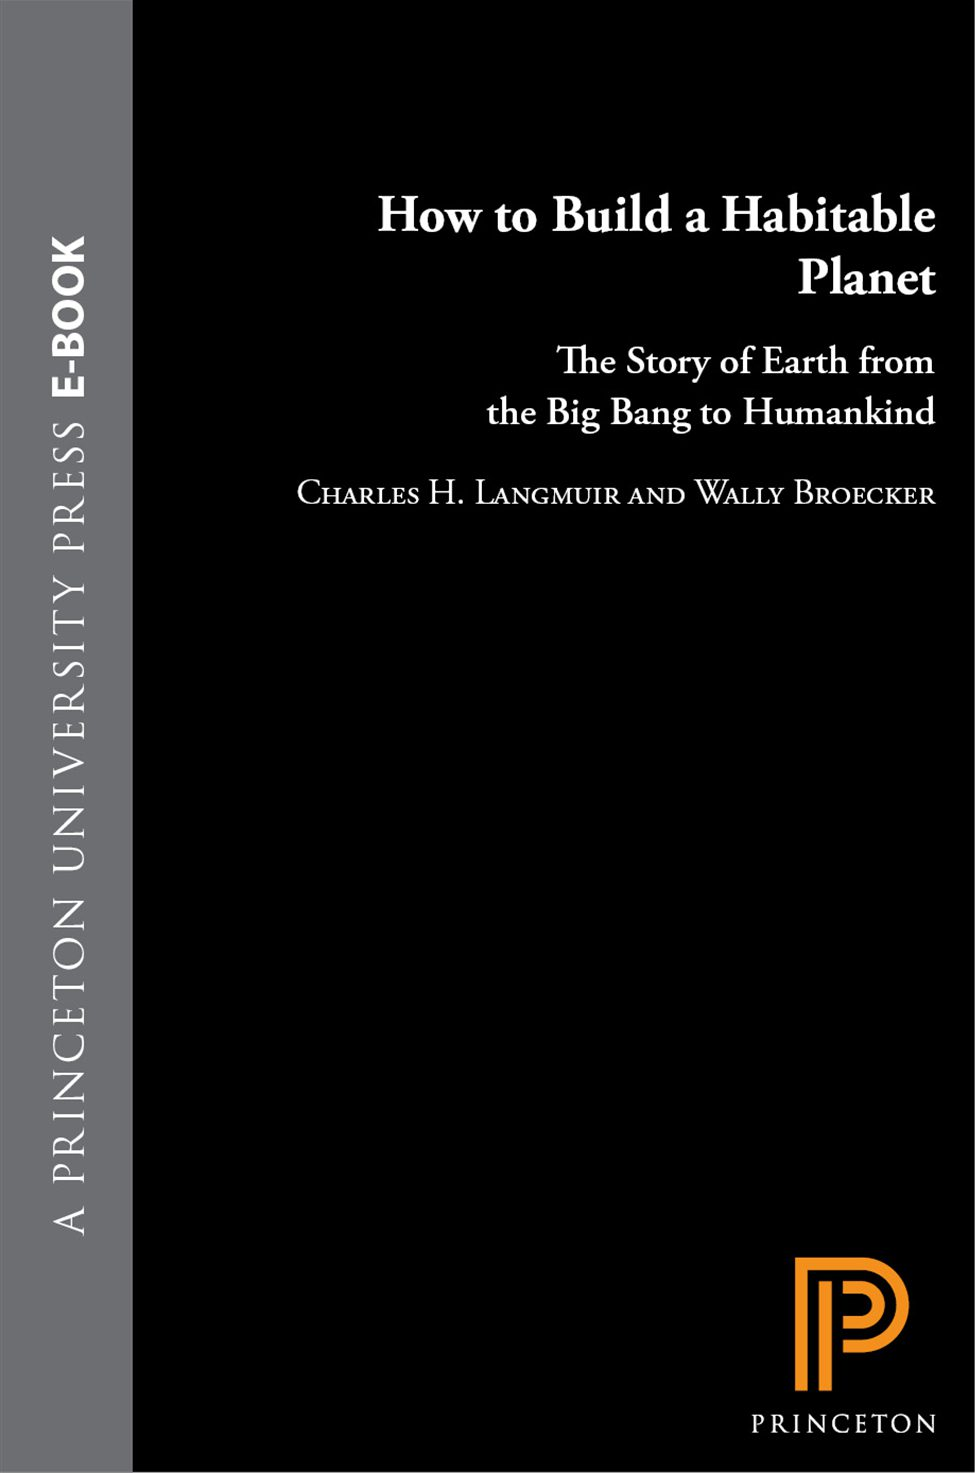 How to Build a Habitable Planet front cover